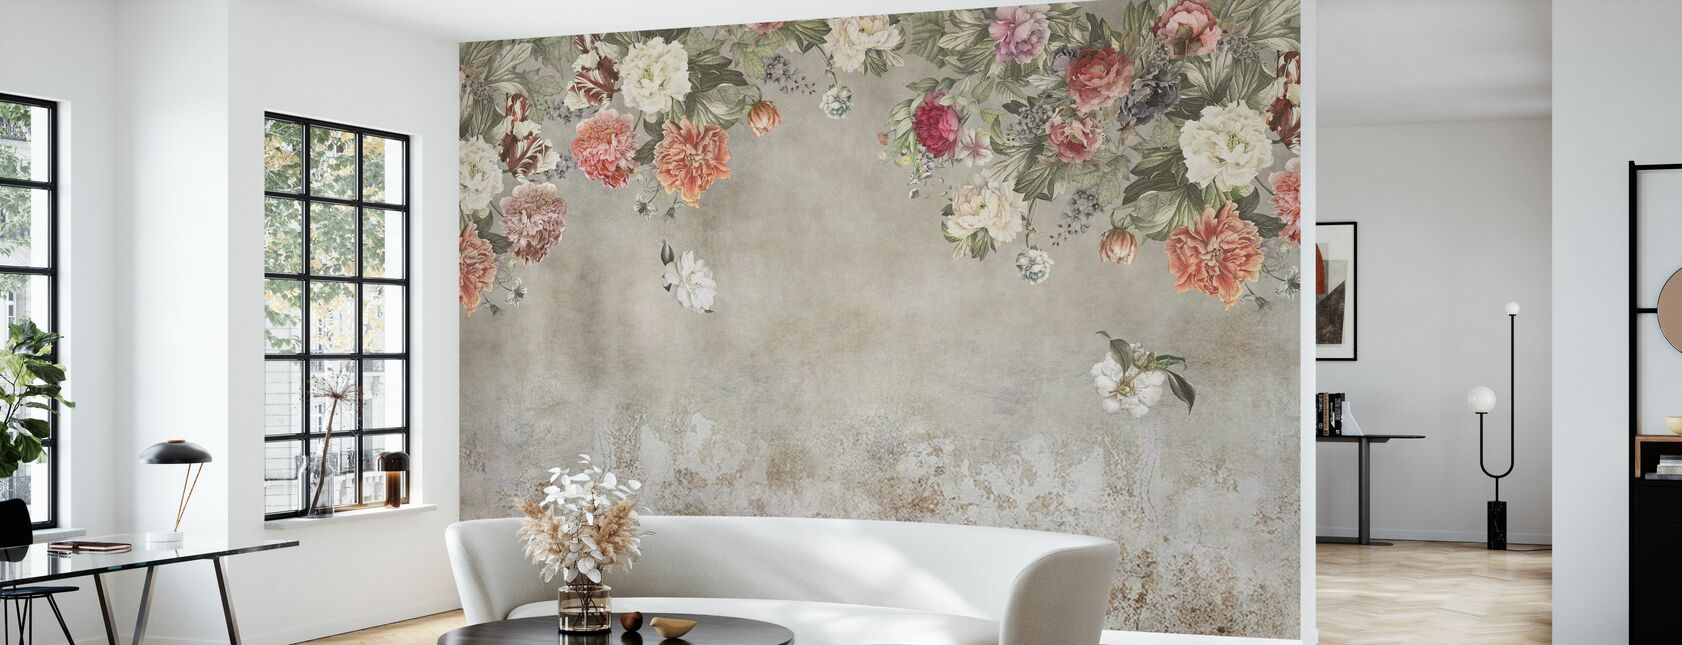 Vintage Flower Wall - Wallpaper - Living Room